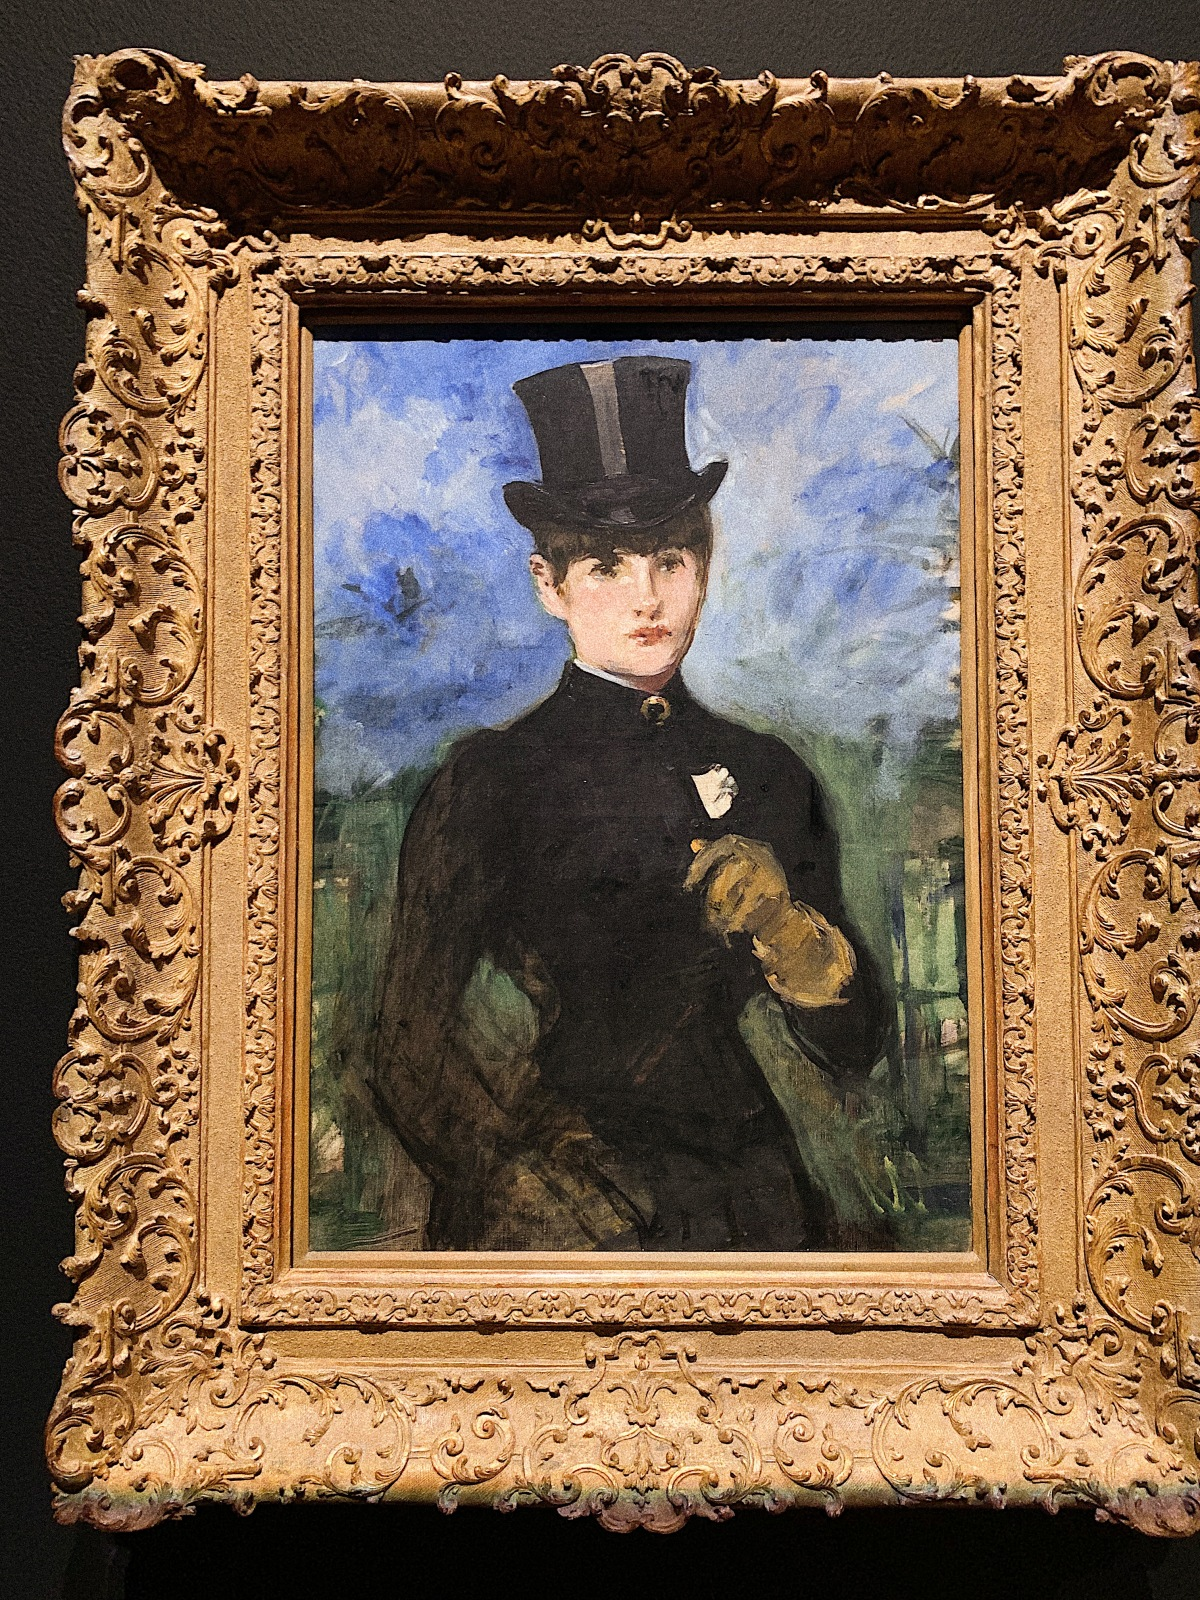 Edouard Manet, Getty Museum, Manet, Manet and Modern Beauty, Art, Manet's Young Woman in a Riding Costume, french modernist painting